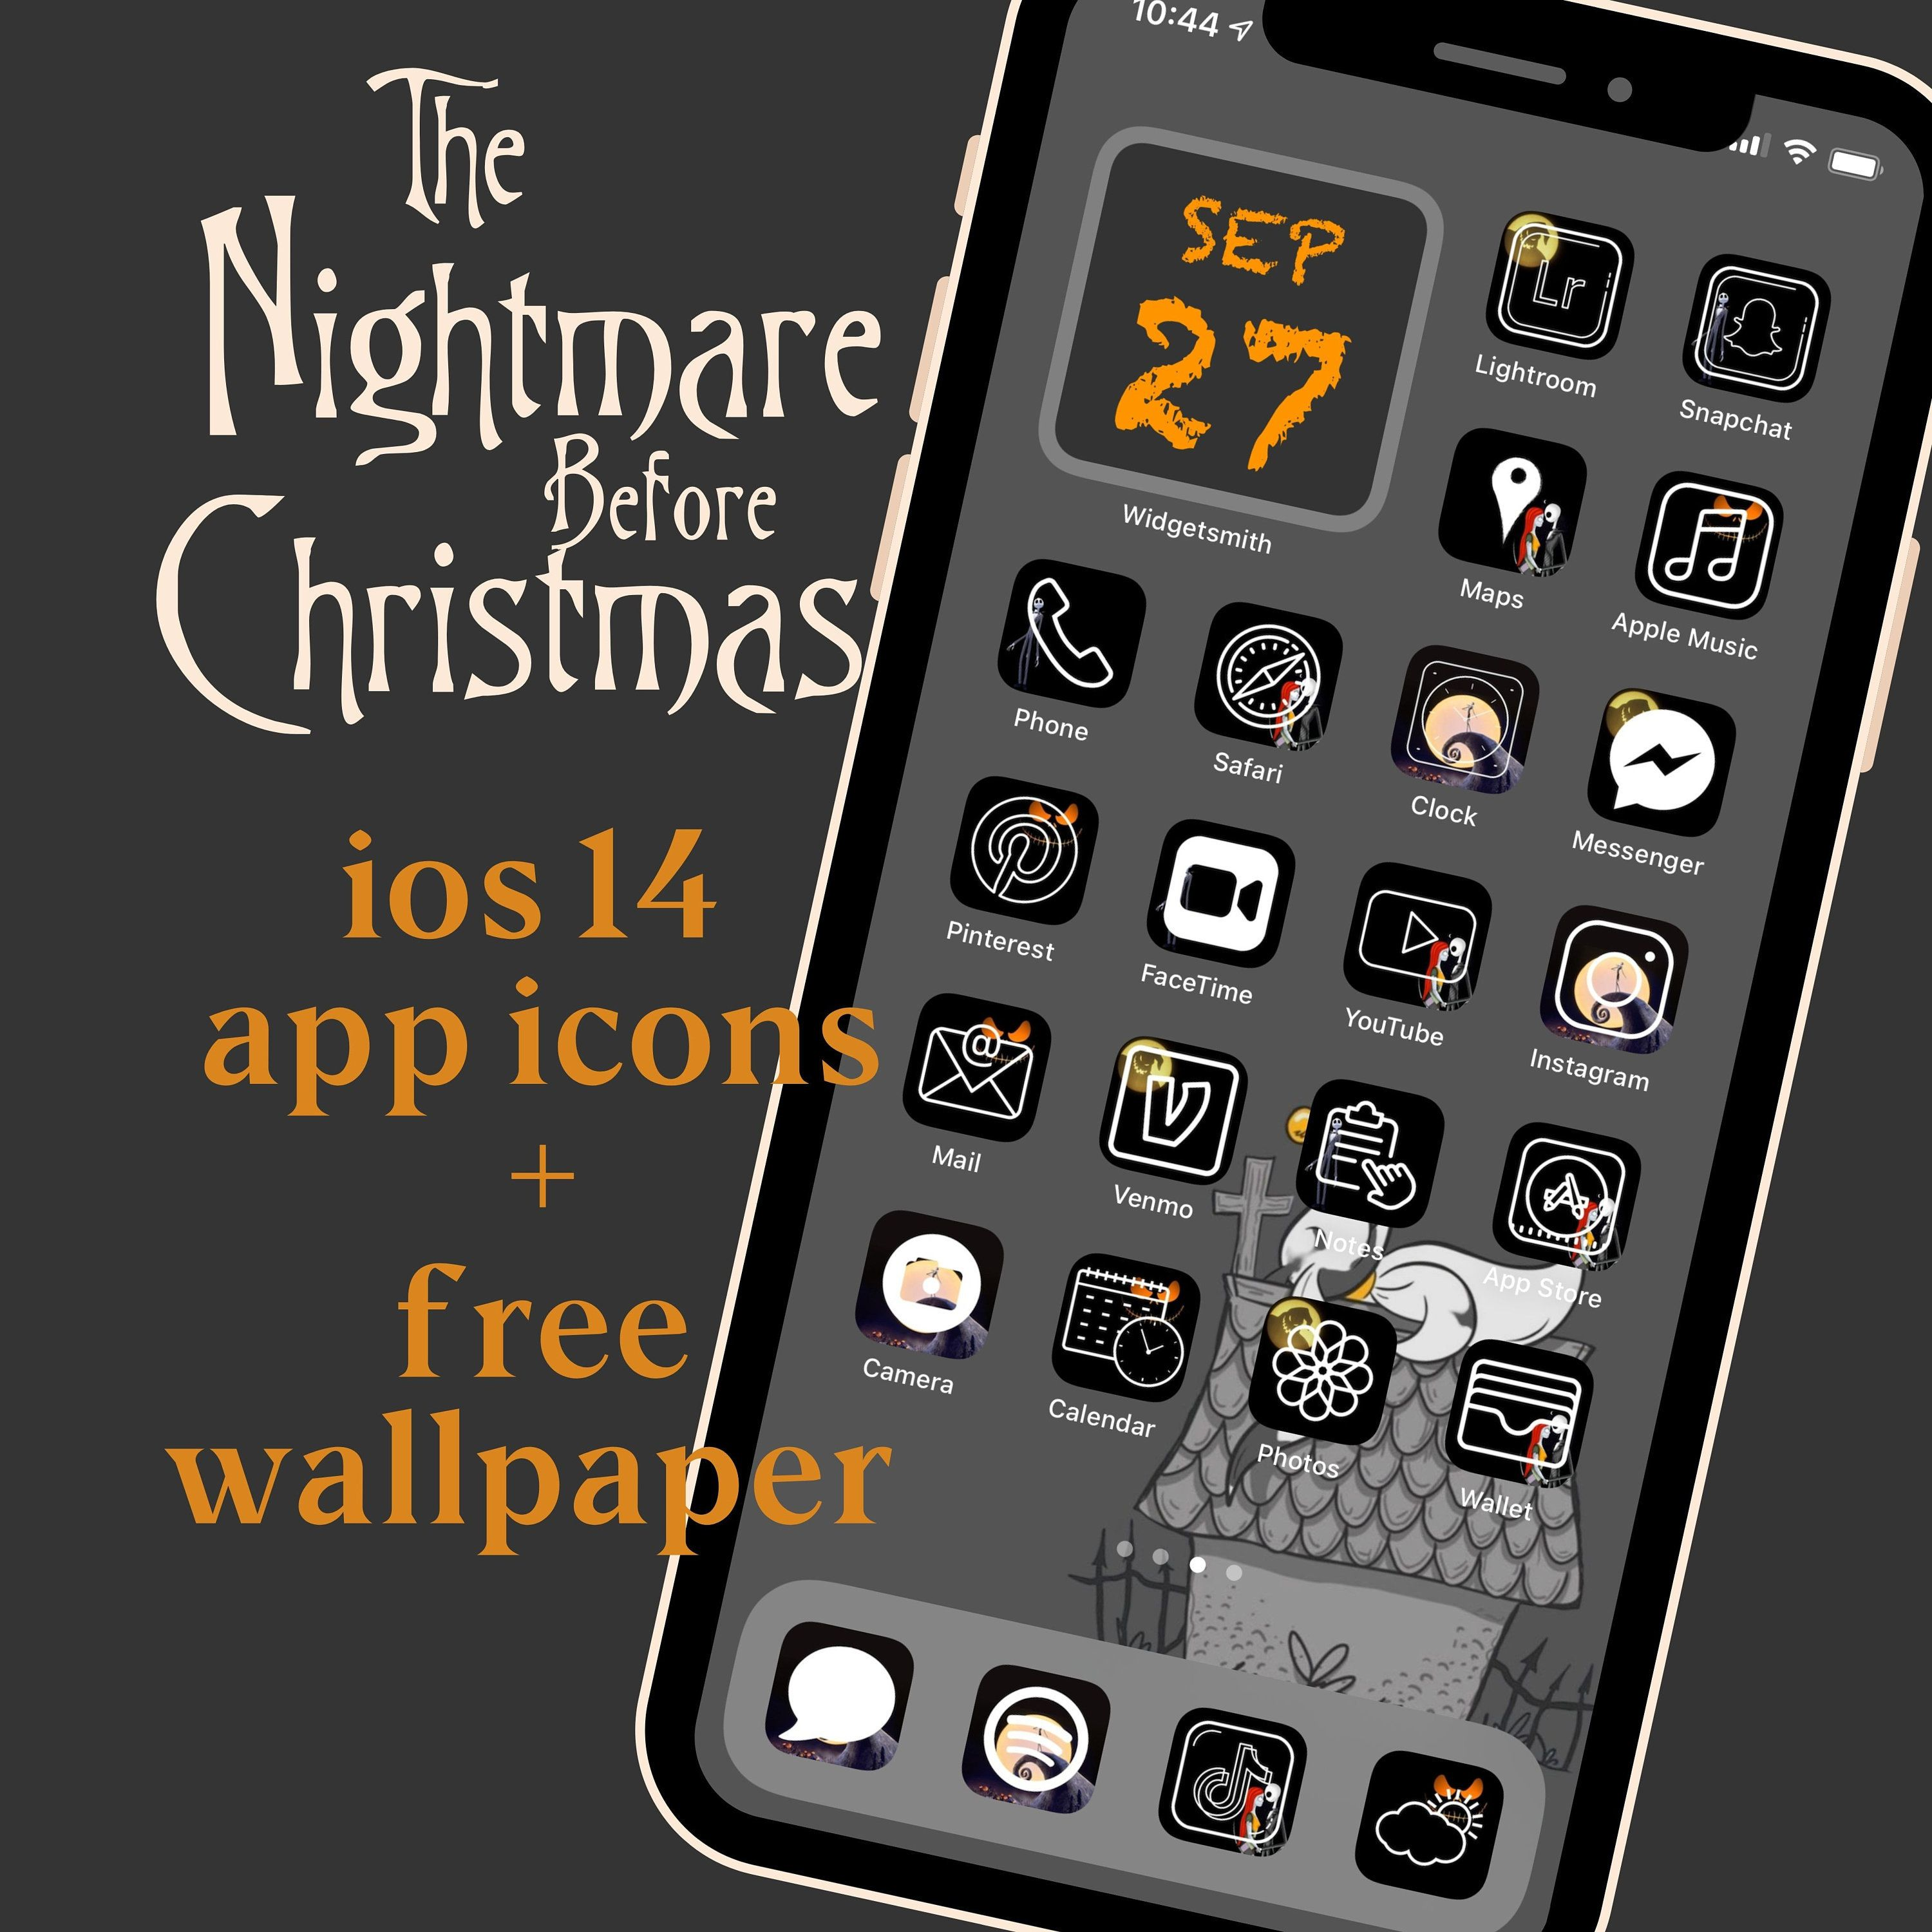 The Nightmare Before Christmas Halloween Ios 14 App Icon Etsy In 2021 App Icon Christmas Apps Homescreen